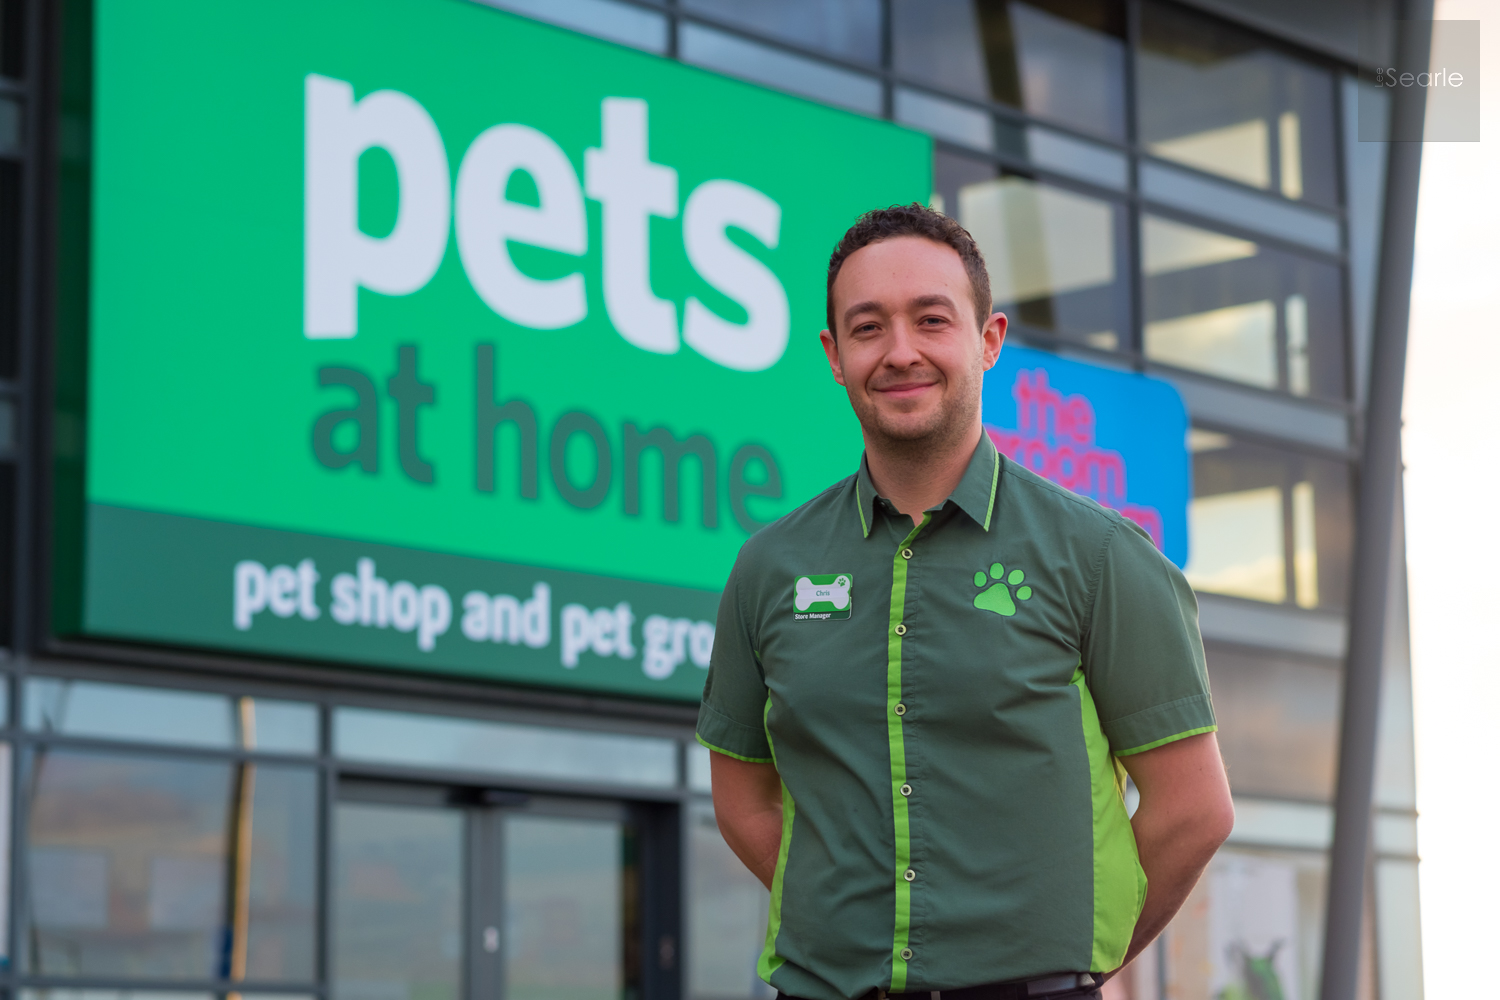 Pets-at-home-launch-penzzance-photography-6.jpg